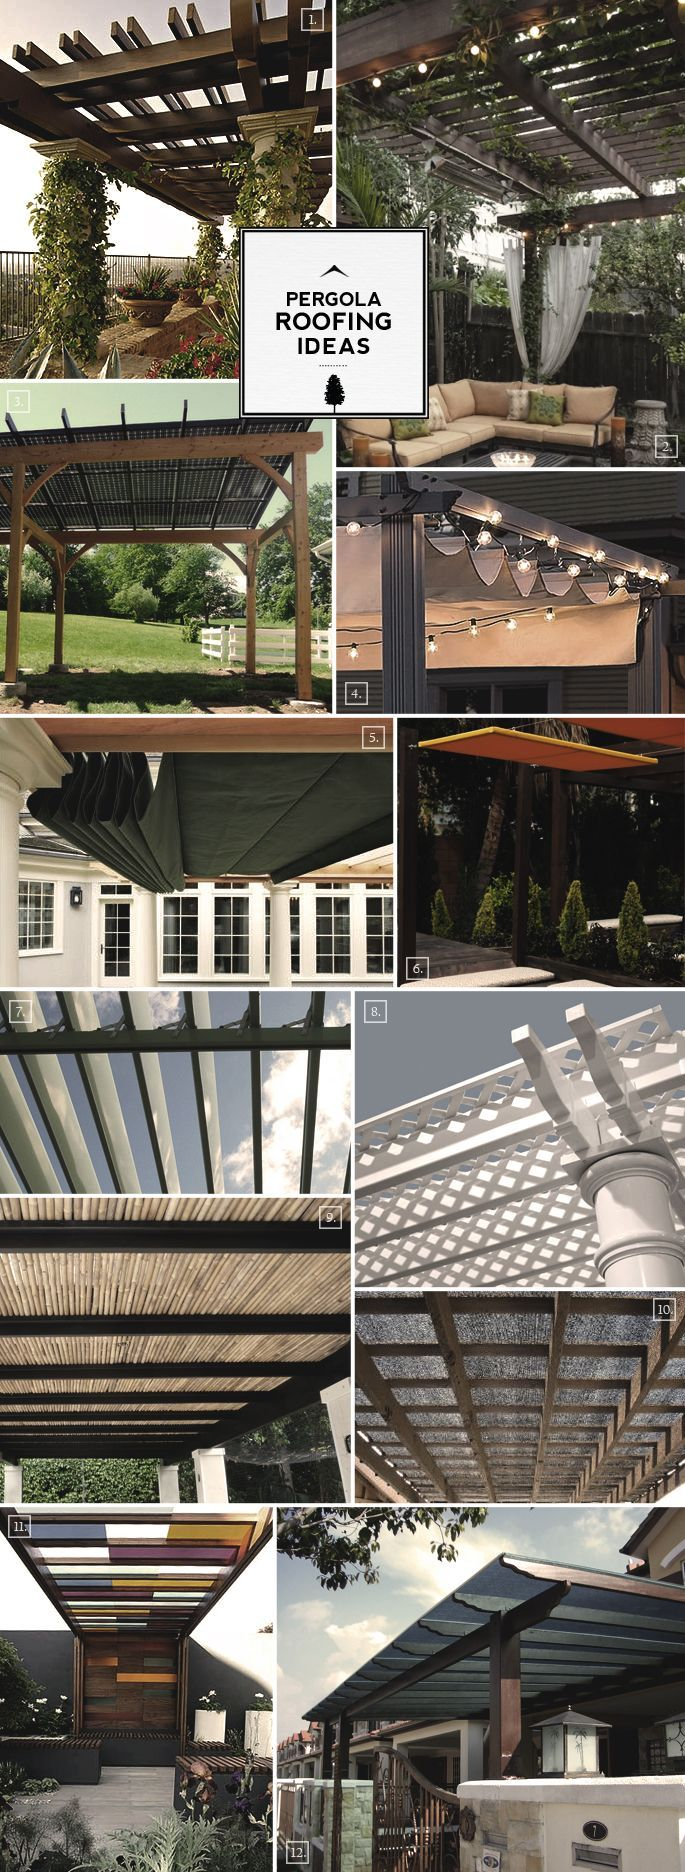 Pergola roofing ideas. From canvas panels to motorized beams, creative ways of making more shade.